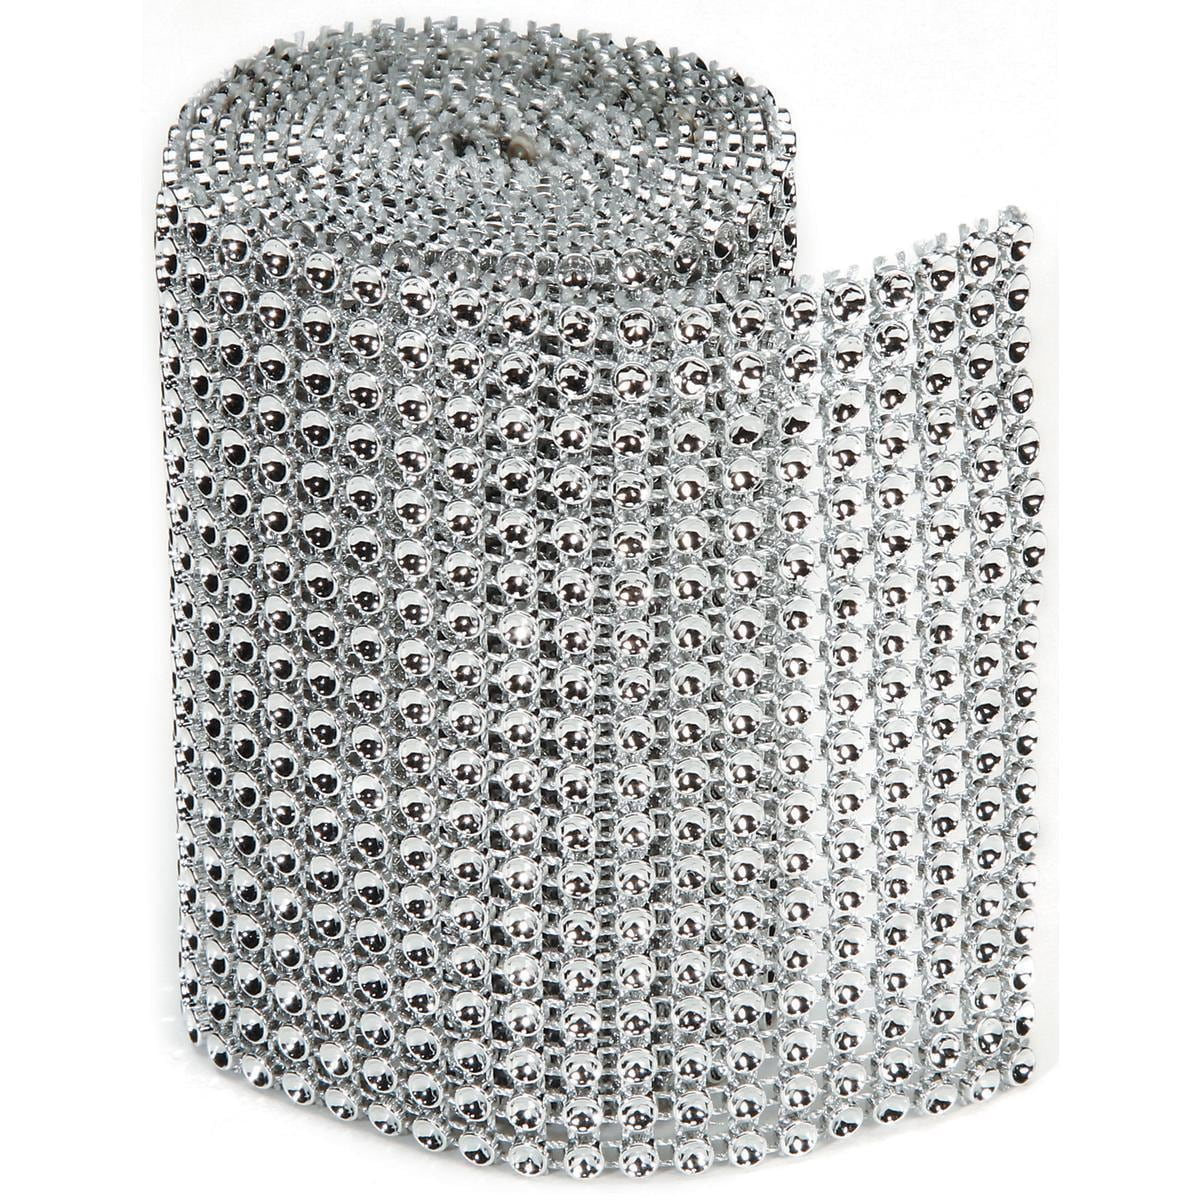 DARICE Bling On A Roll 3mm X 1yd - 18 Row, Silver, Gold